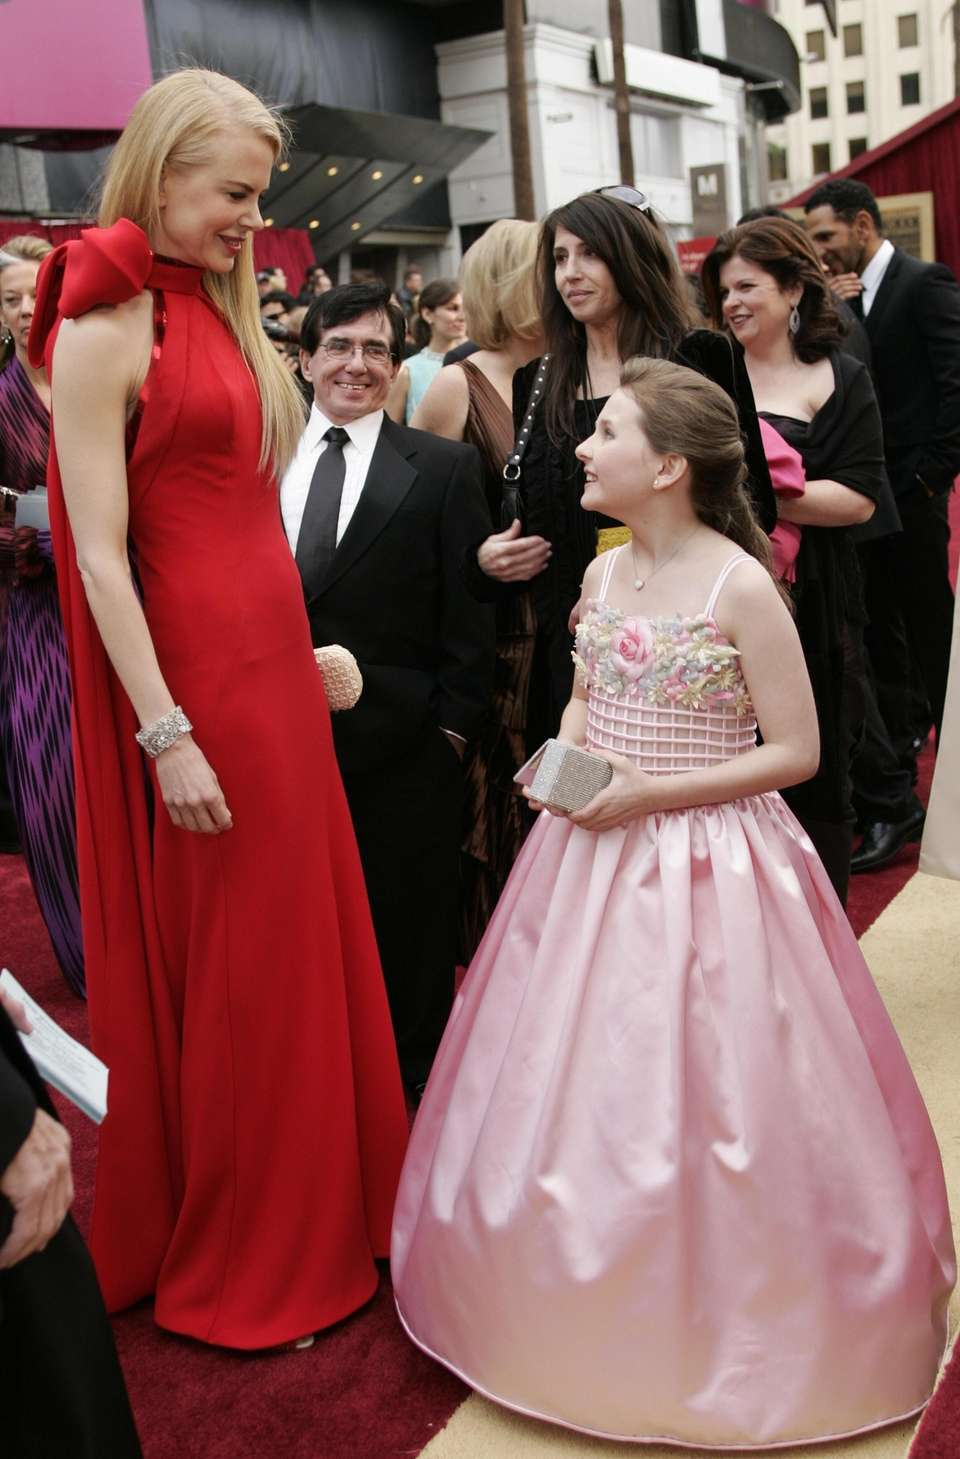 Nicole Kidman, left, chats with Abigail Breslin, who